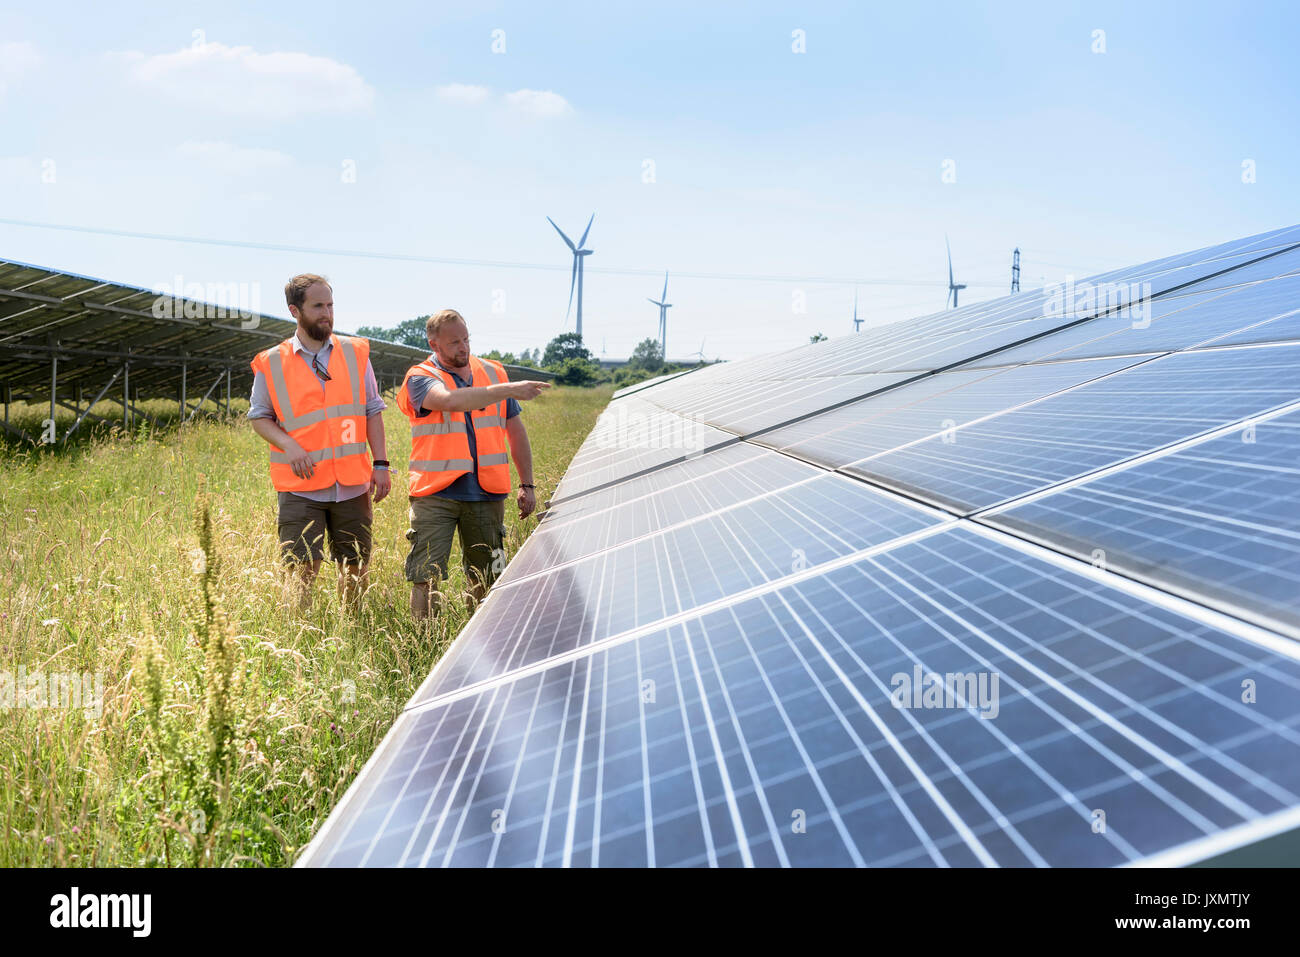 Local community members discussing their solar farm - Stock Image